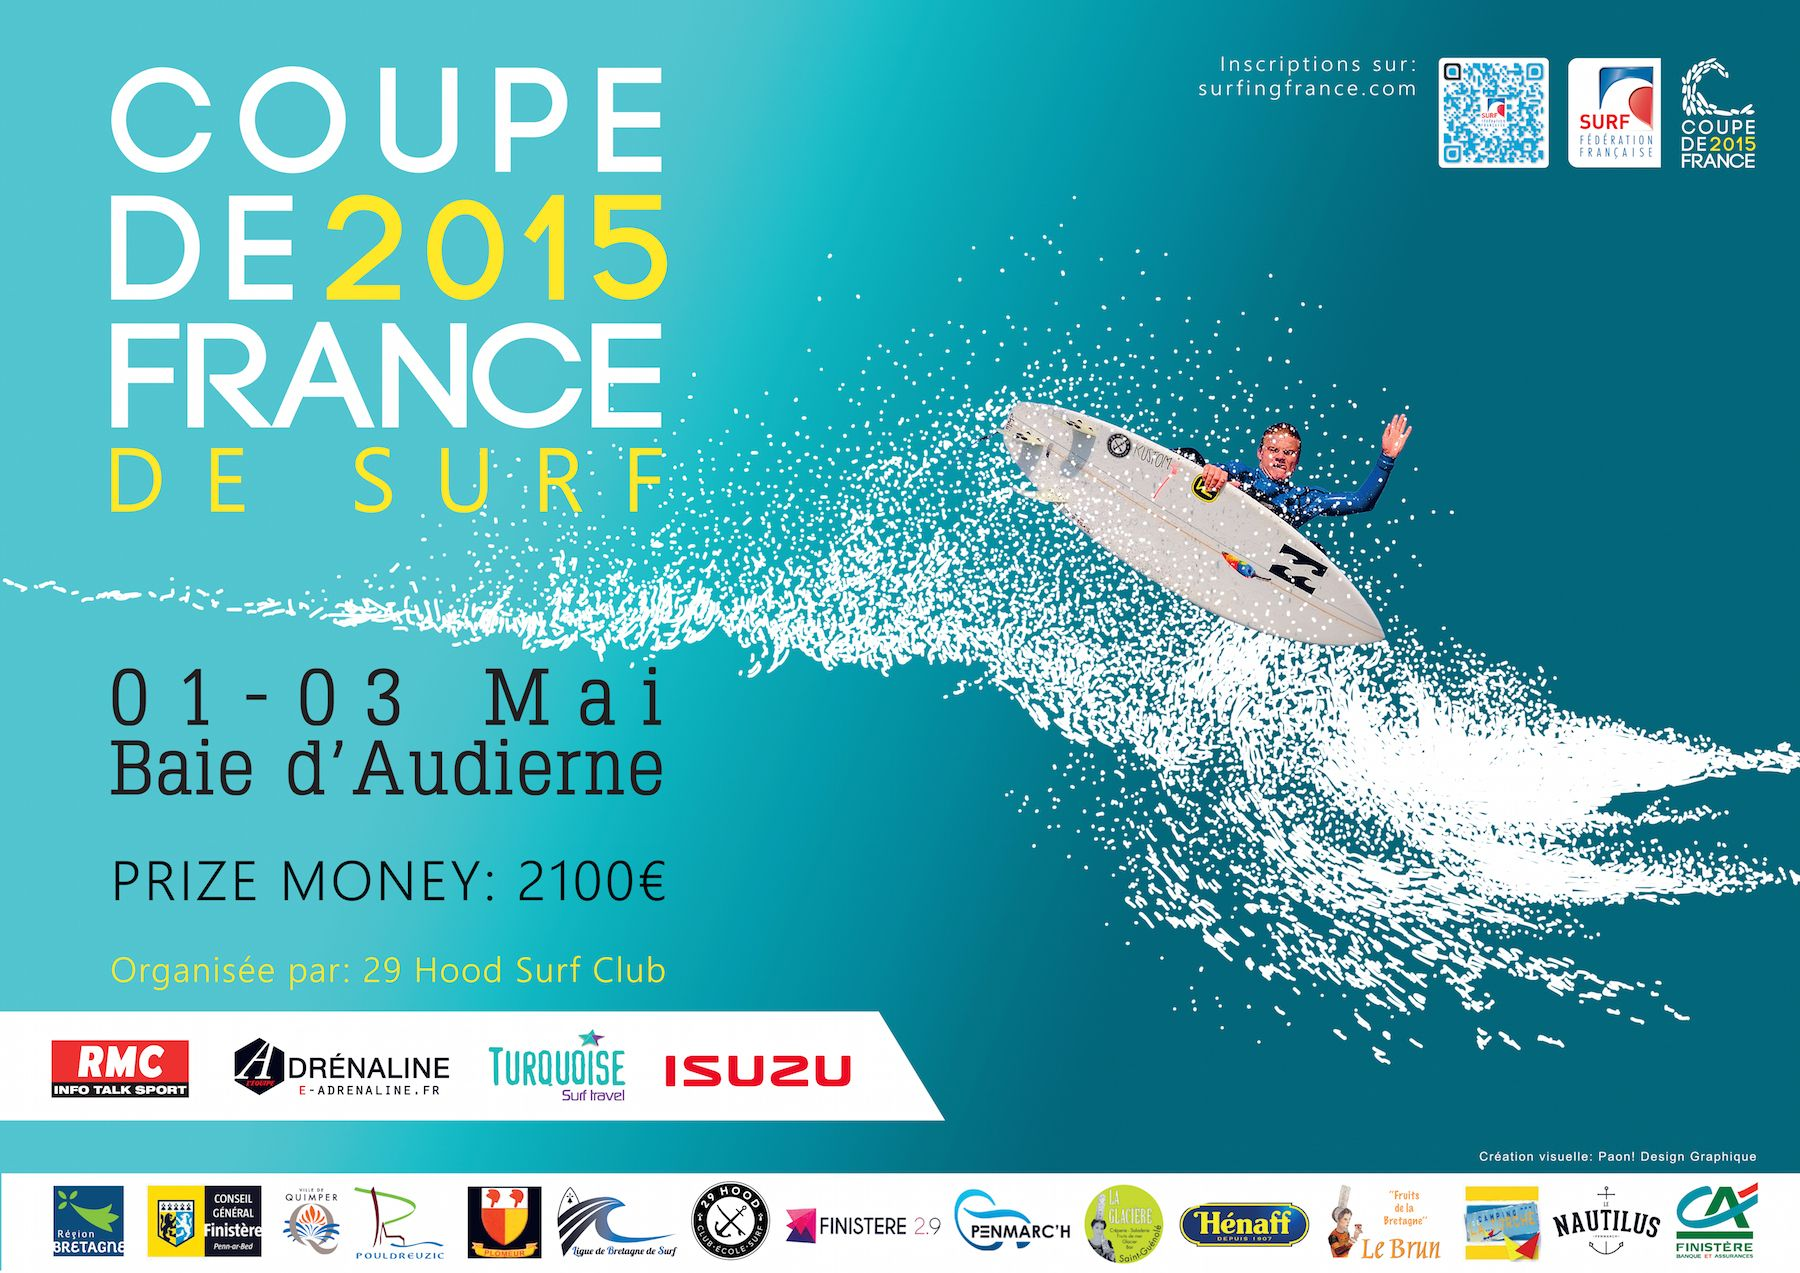 coupe de france surf 2015